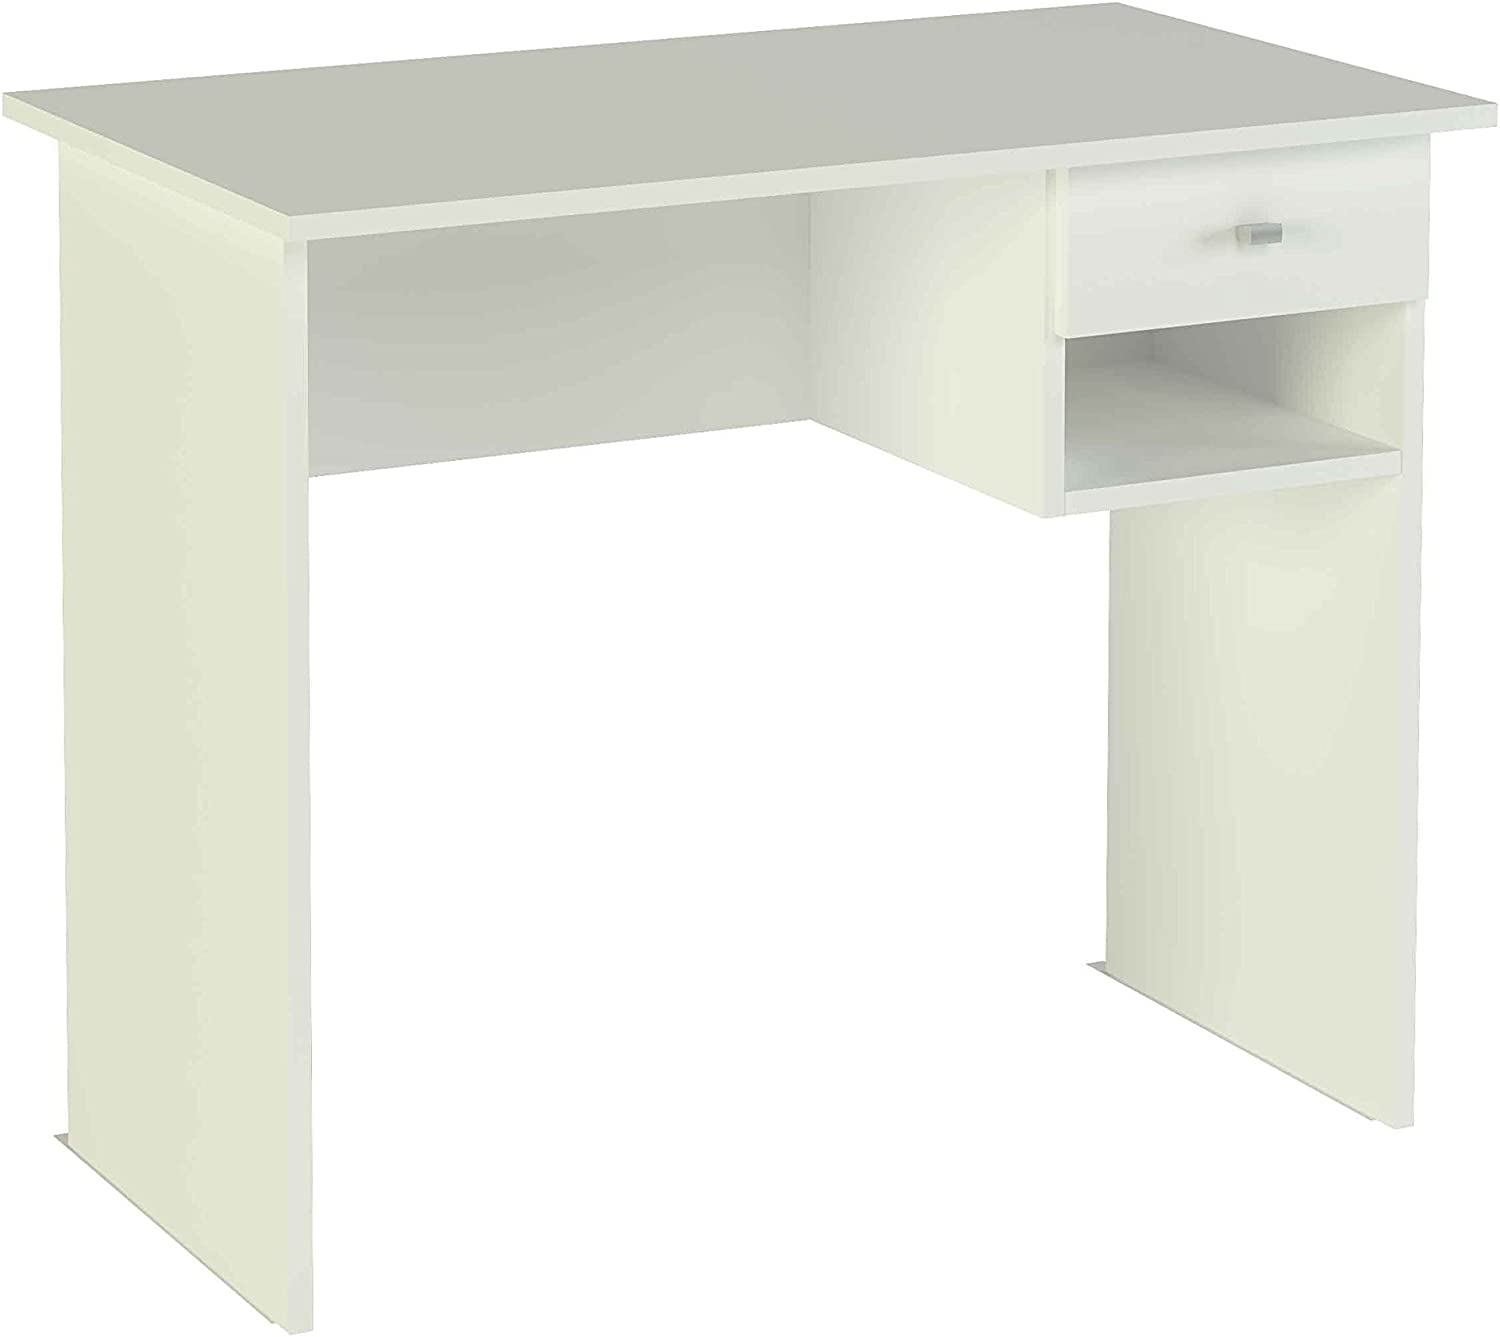 Meka-Block Mesa de Estudio, Nogal, Blanco: Amazon.es: Hogar